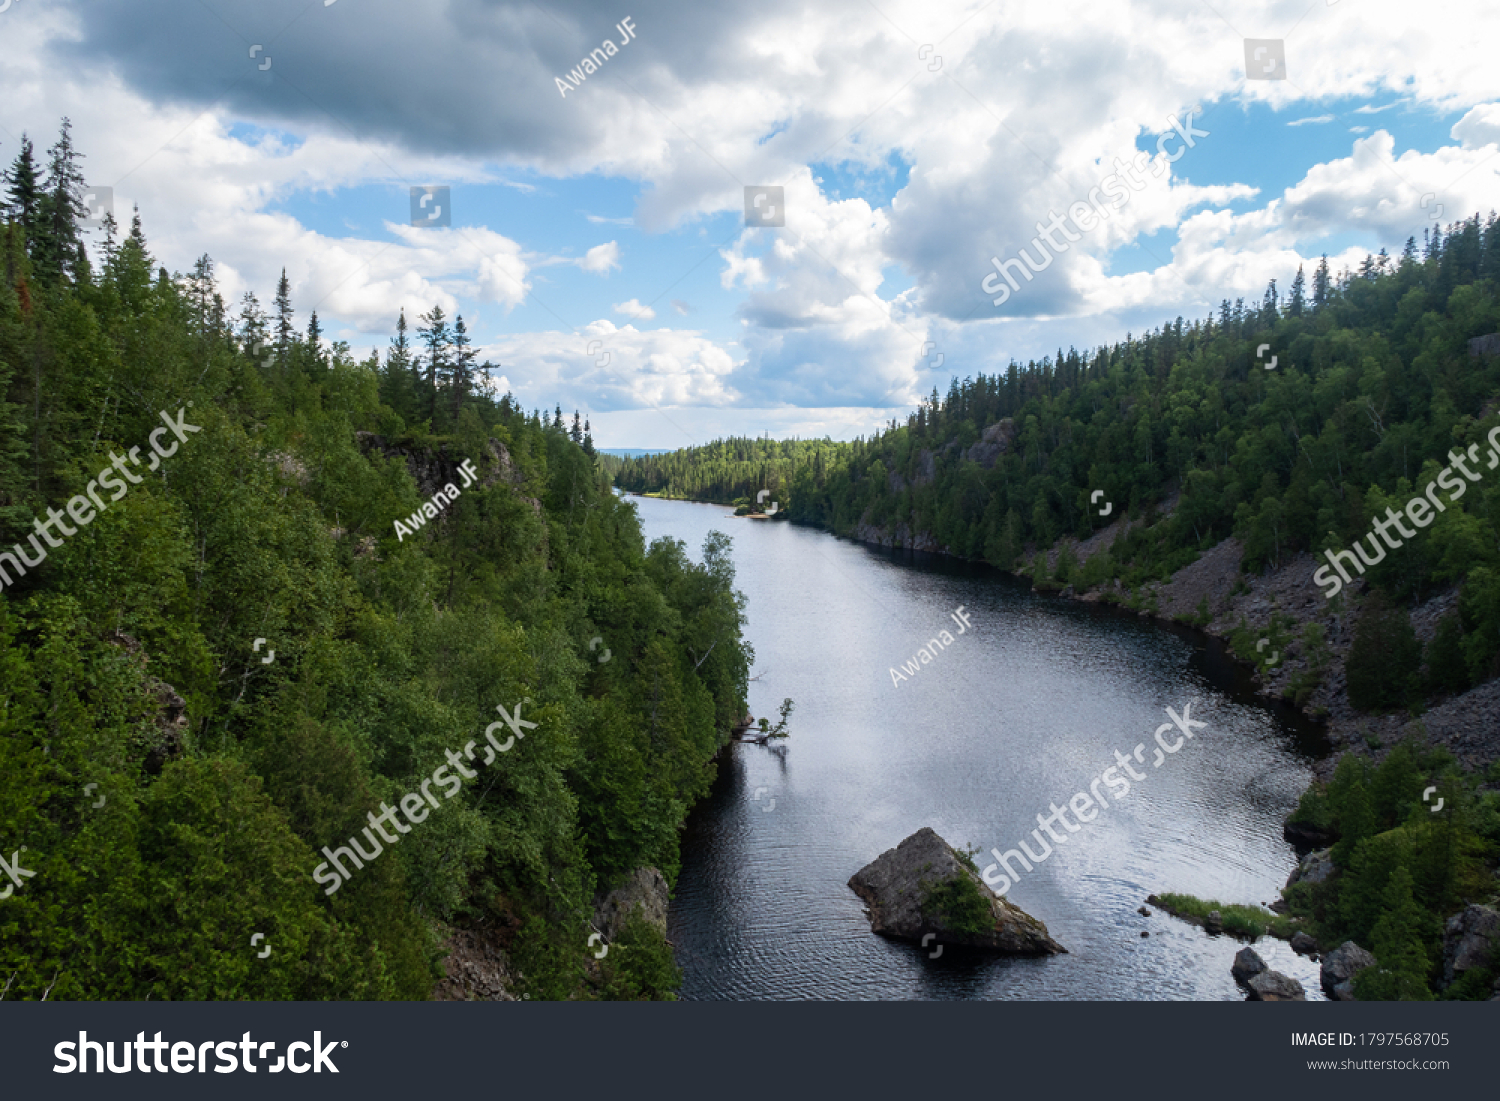 stock-photo-beautiful-view-from-above-of